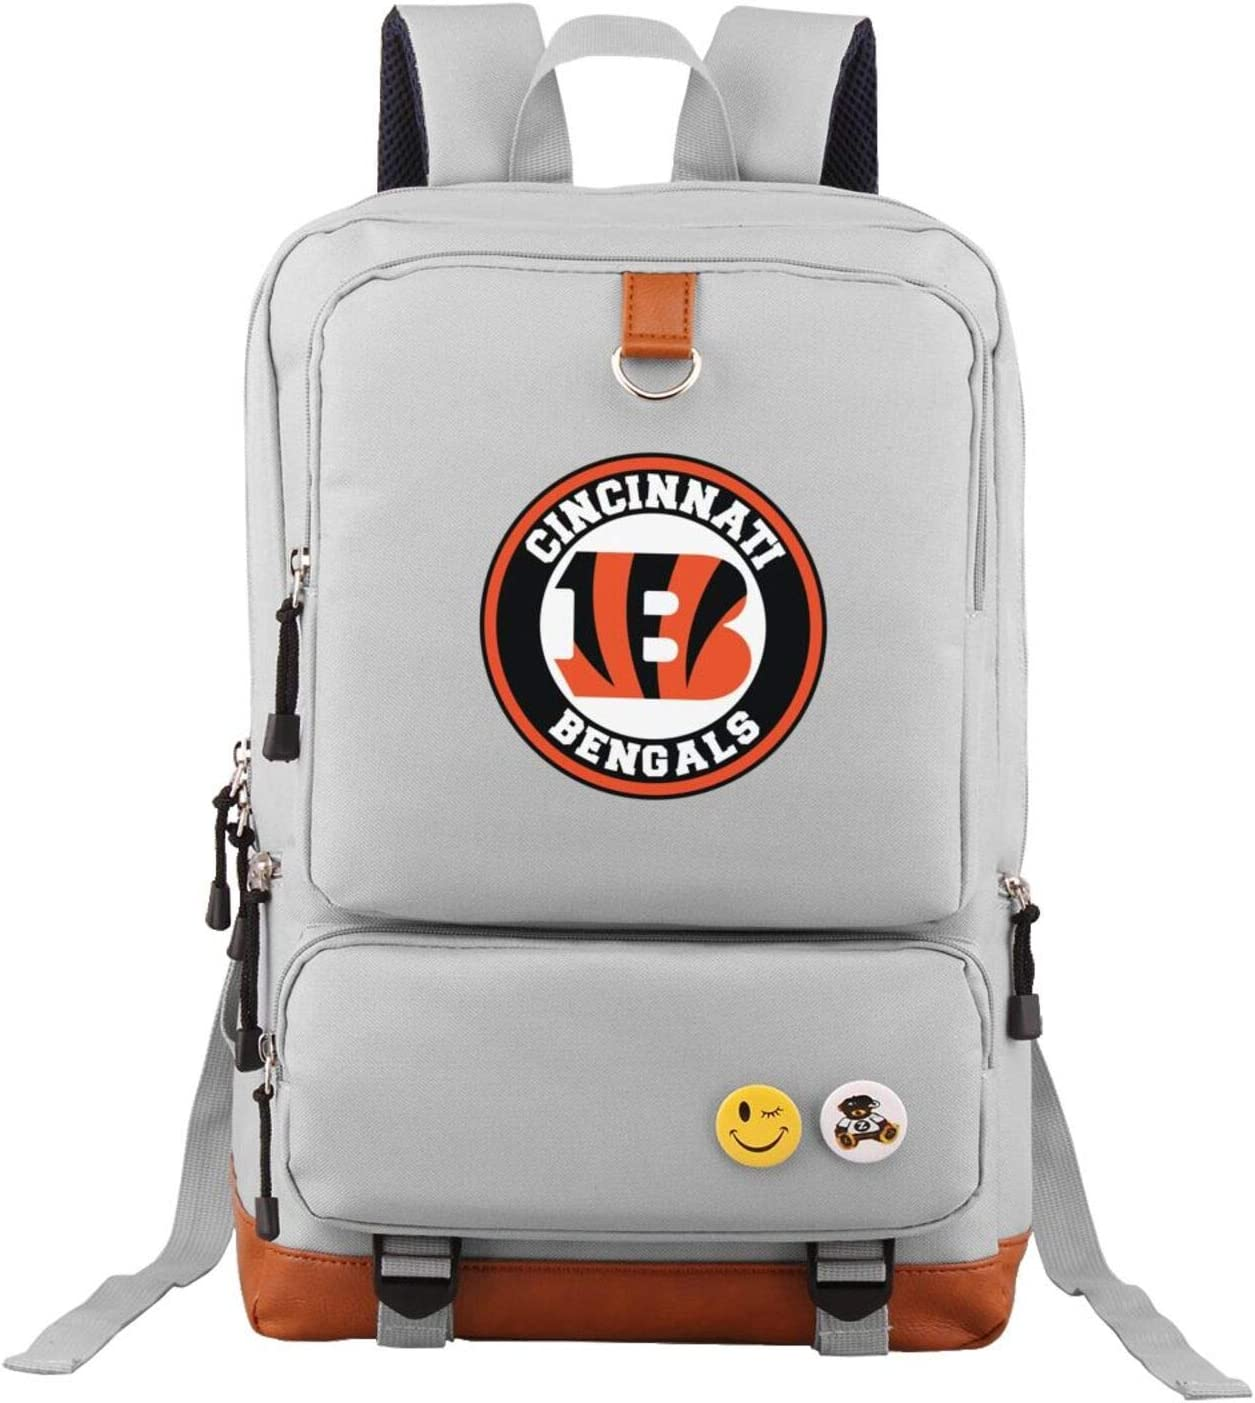 G-III Sports Cincinnati Bengals Backpack for Middle High School College Student Oxford School Bag Laptop Rucksack Gray